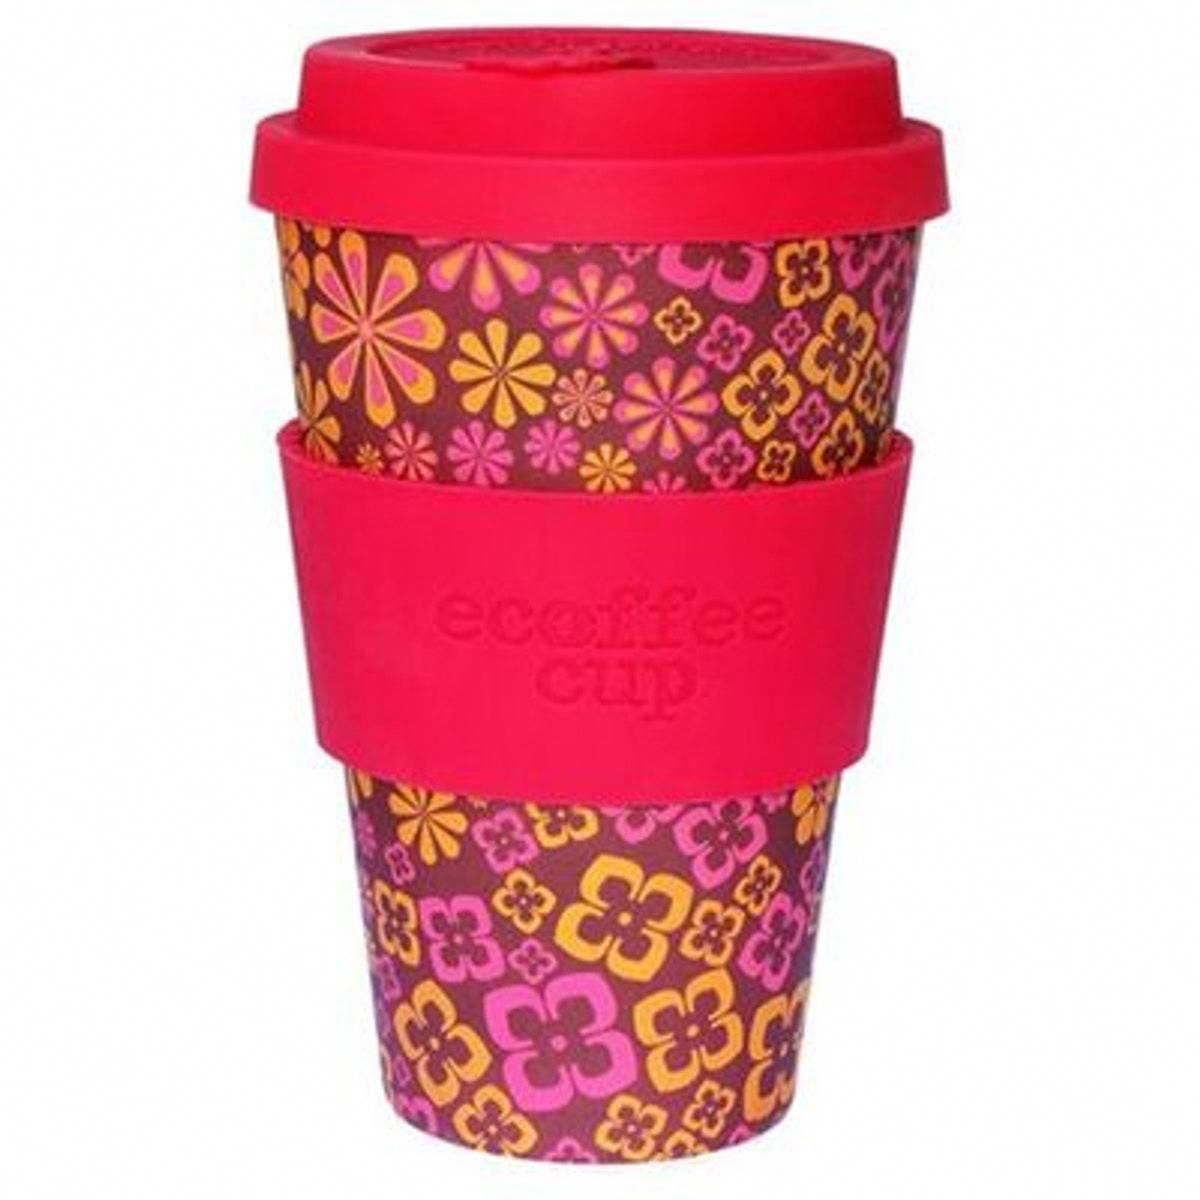 Mug Écologique Yeah Baby Ecoffee Cup - Taille : Taille Unique #reusablecup #gedecktertisch